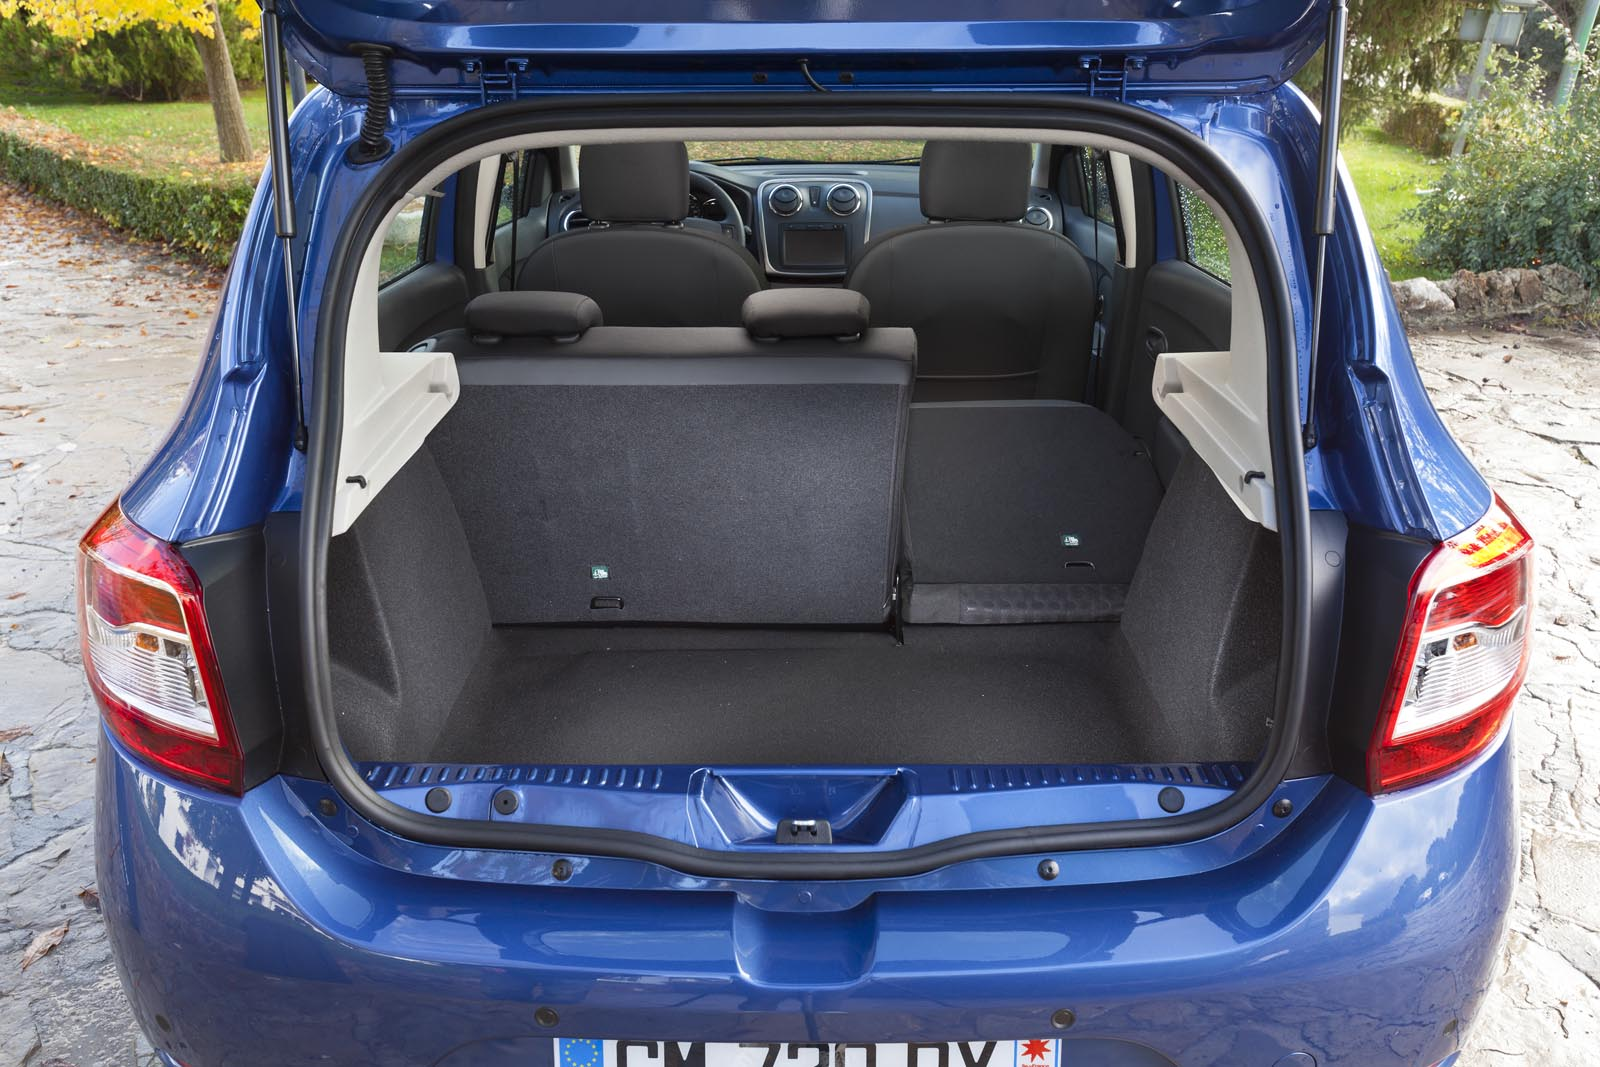 test n premier cu noua dacia sandero a doua genera ie sandero promite. Black Bedroom Furniture Sets. Home Design Ideas